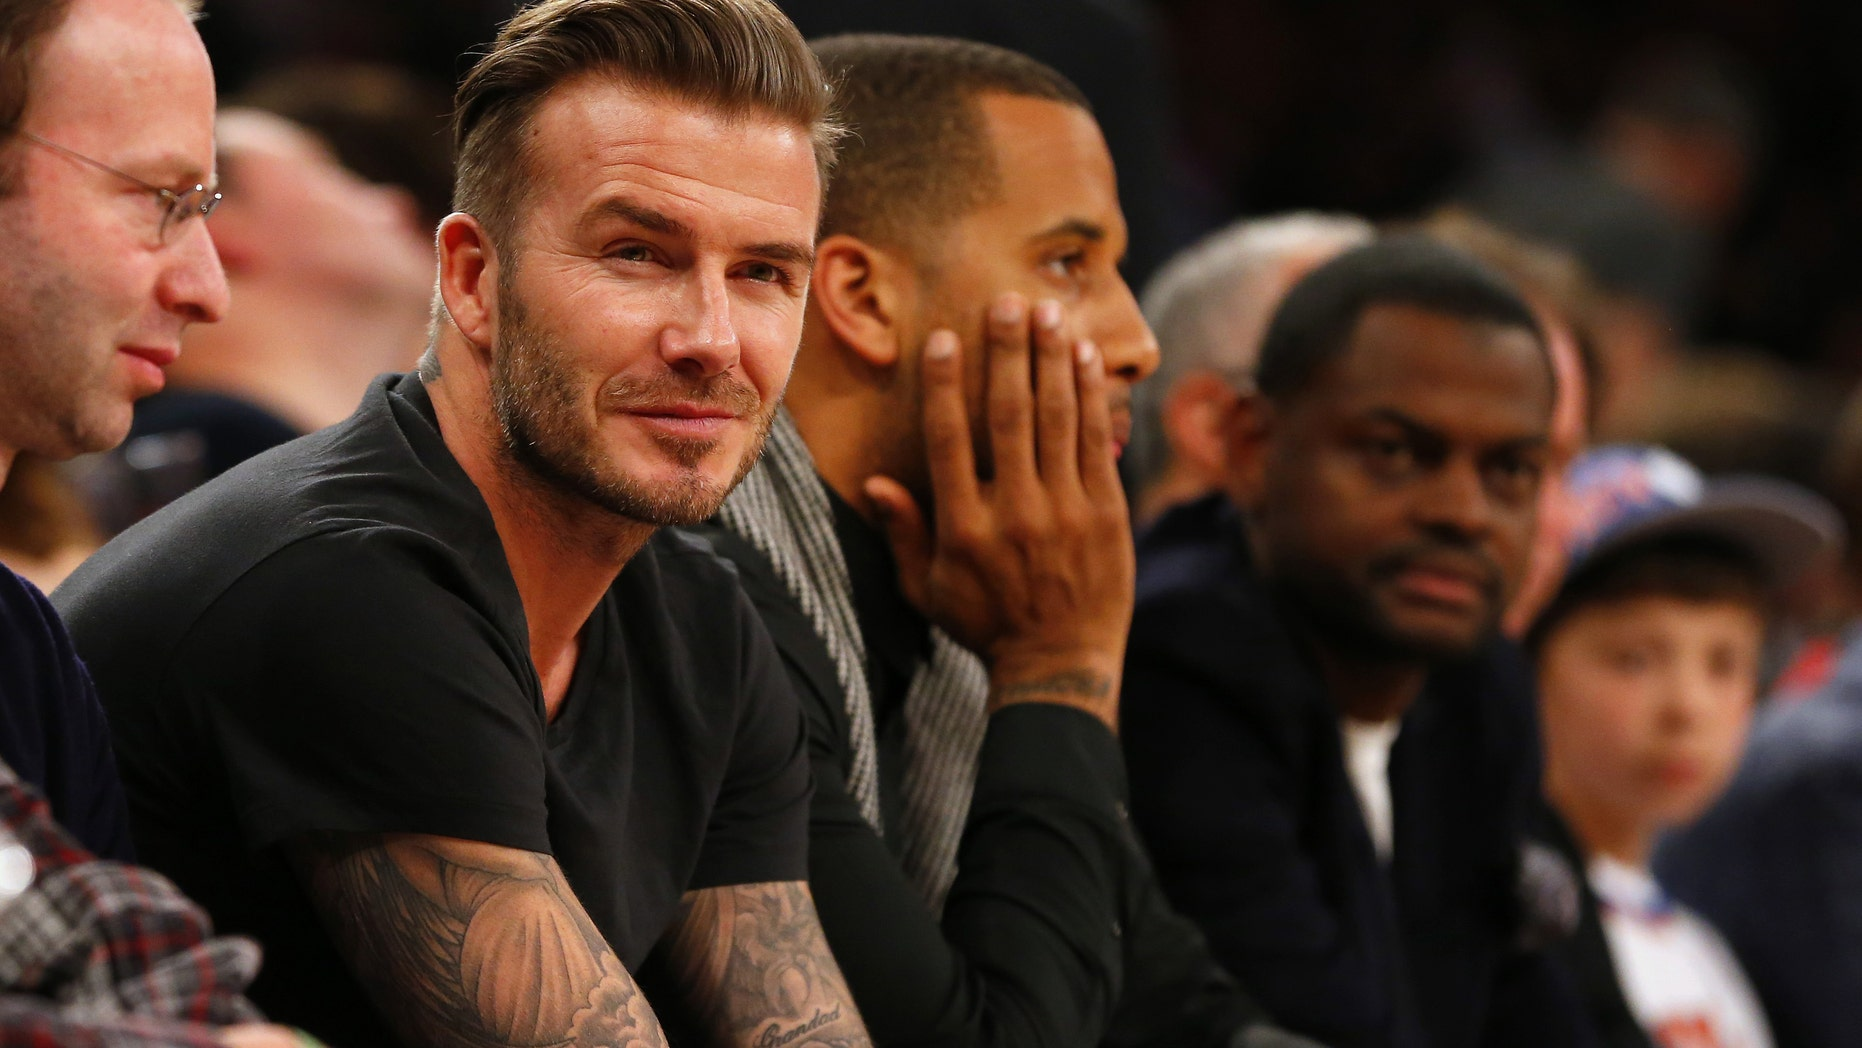 NEW YORK, NY - FEBRUARY 1: Former soccer player David Beckham watches the action during a game between the Miami Heat and the New York Knicks at Madison Square Garden on February. 1, 2014 in New York City. The Heat defeated the Knicks 106-91. NOTE TO USER: User expressly acknowledges and agrees that, by downloading and/or using this Photograph, user is consenting to the terms and conditions of the Getty Images License Agreement. (Photo by Rich Schultz /Getty Images)